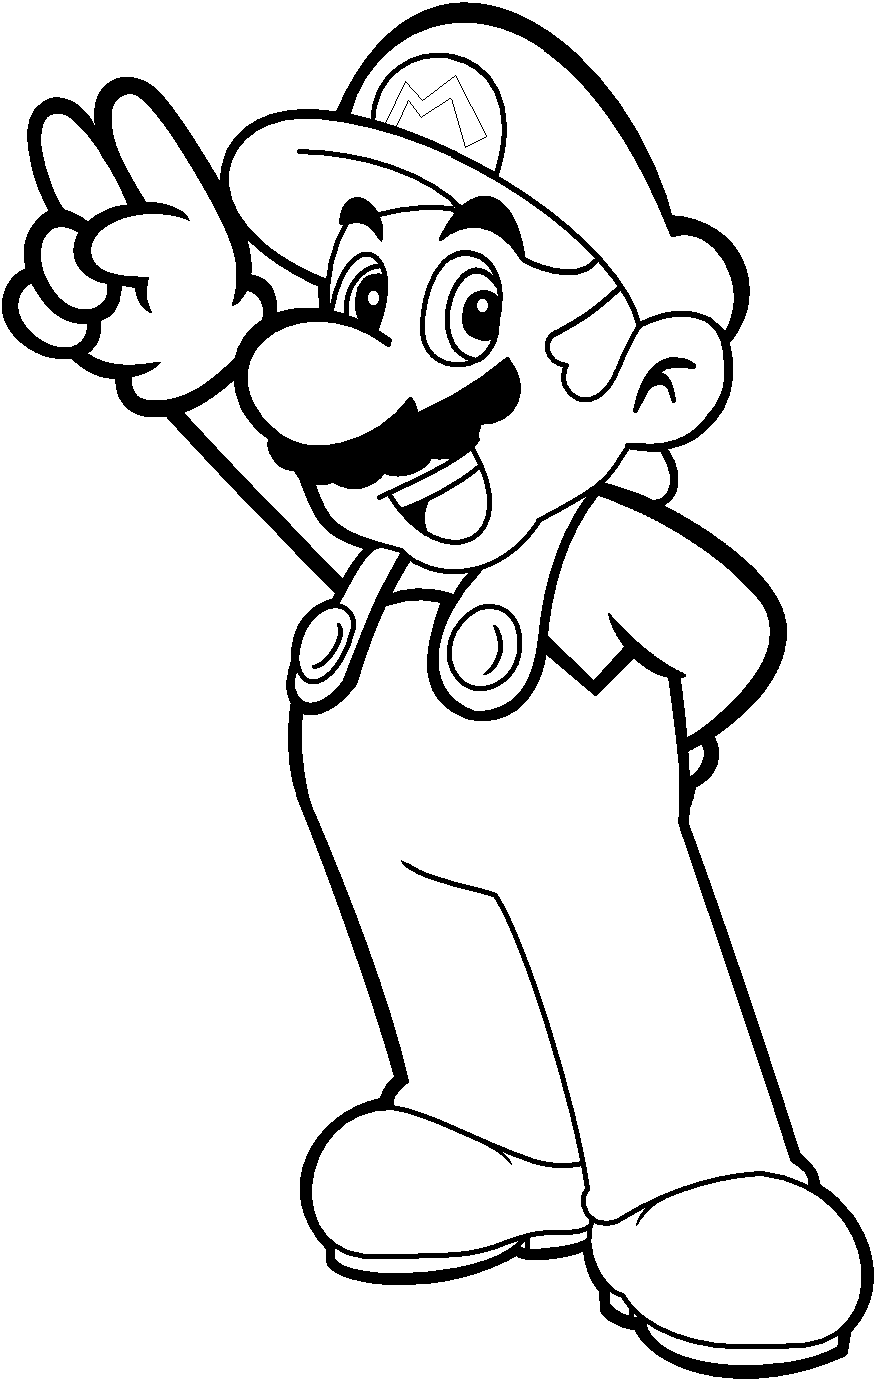 printable mario coloring pages coloring pages mario coloring pages free and printable mario coloring pages printable